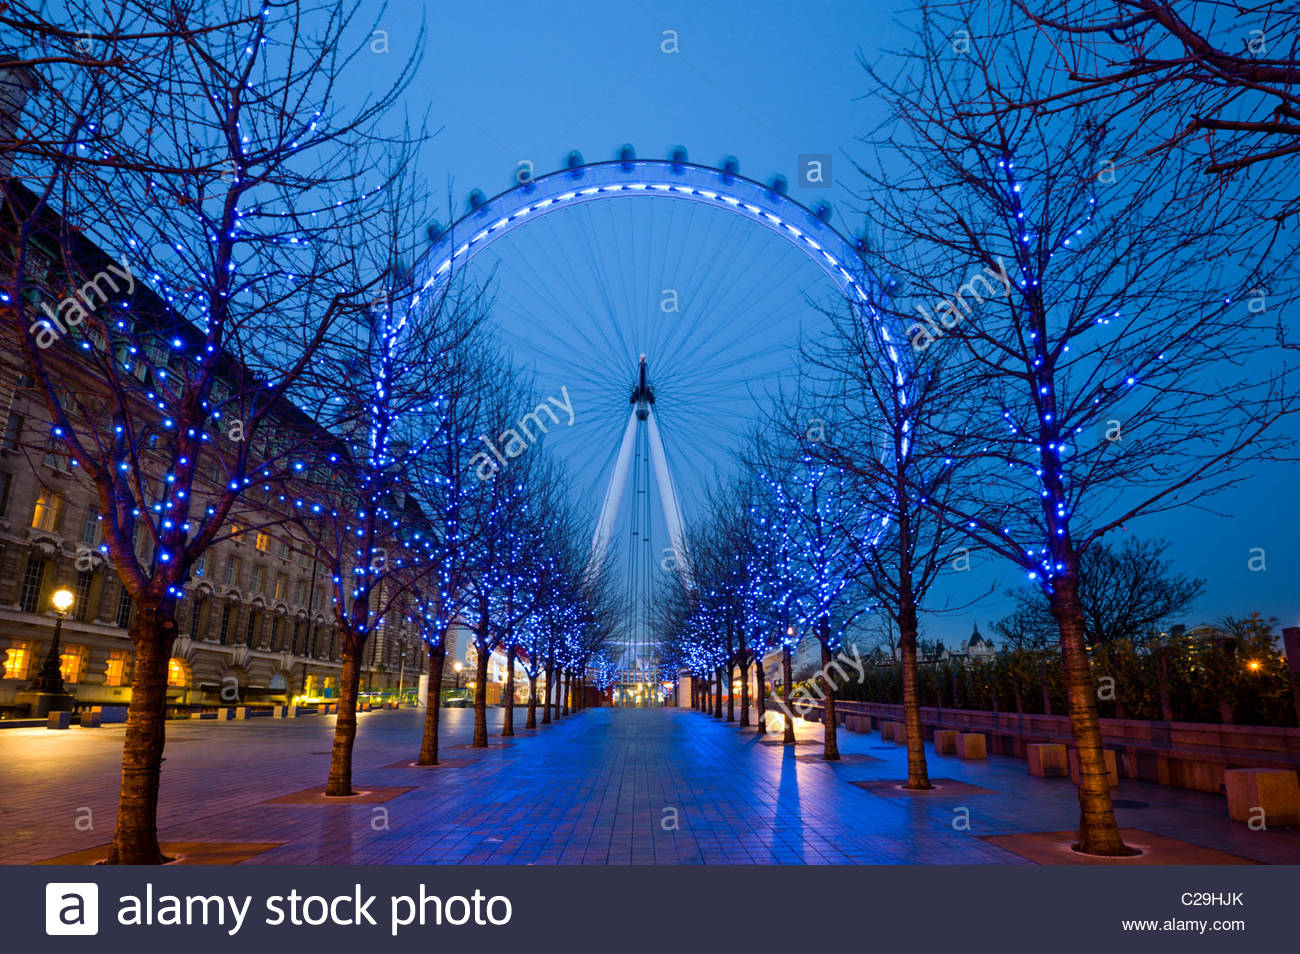 Night view of the London Eye in winter, South Bank, London, UK. - Stock Image